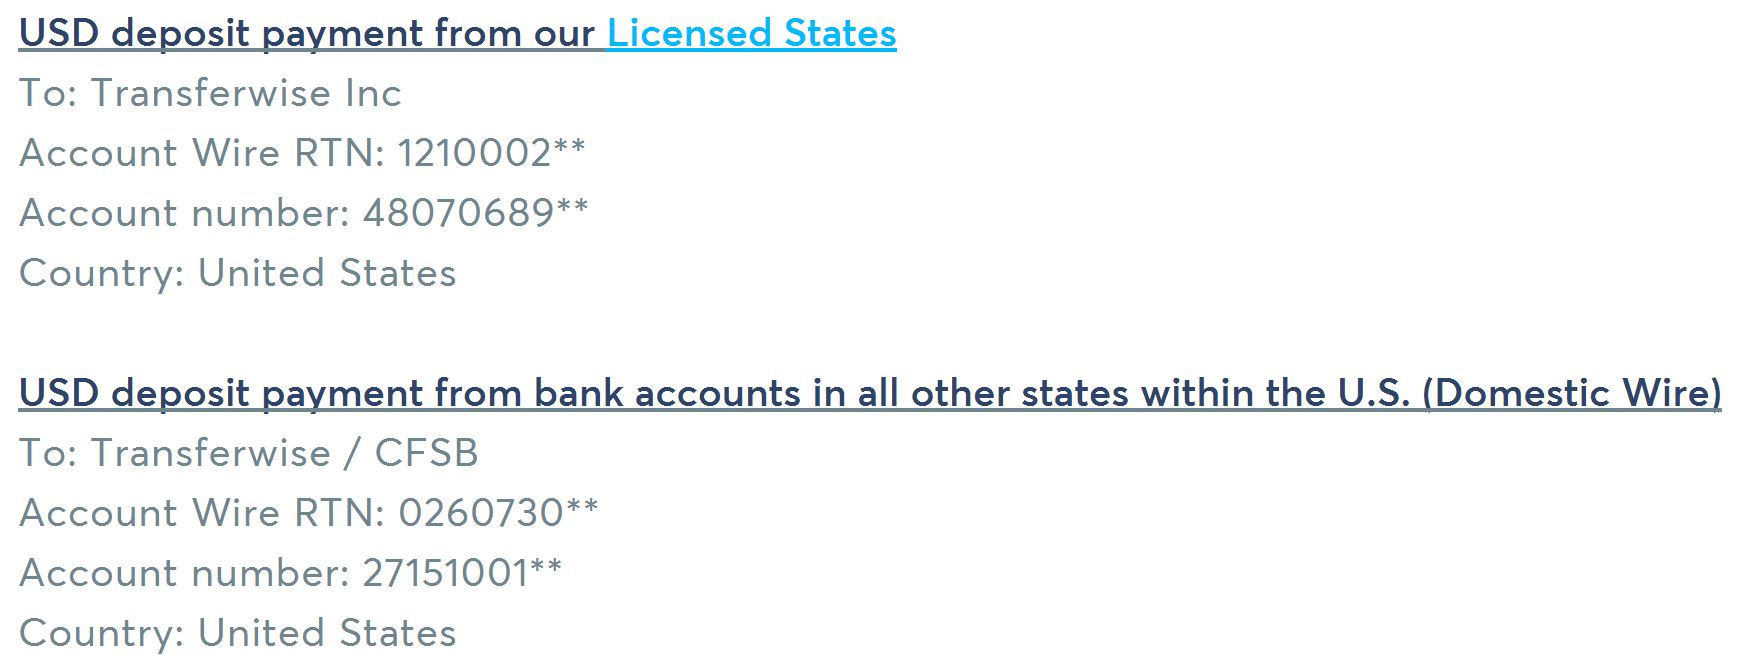 TransferWise bank accounts in USA - March 3, 2017